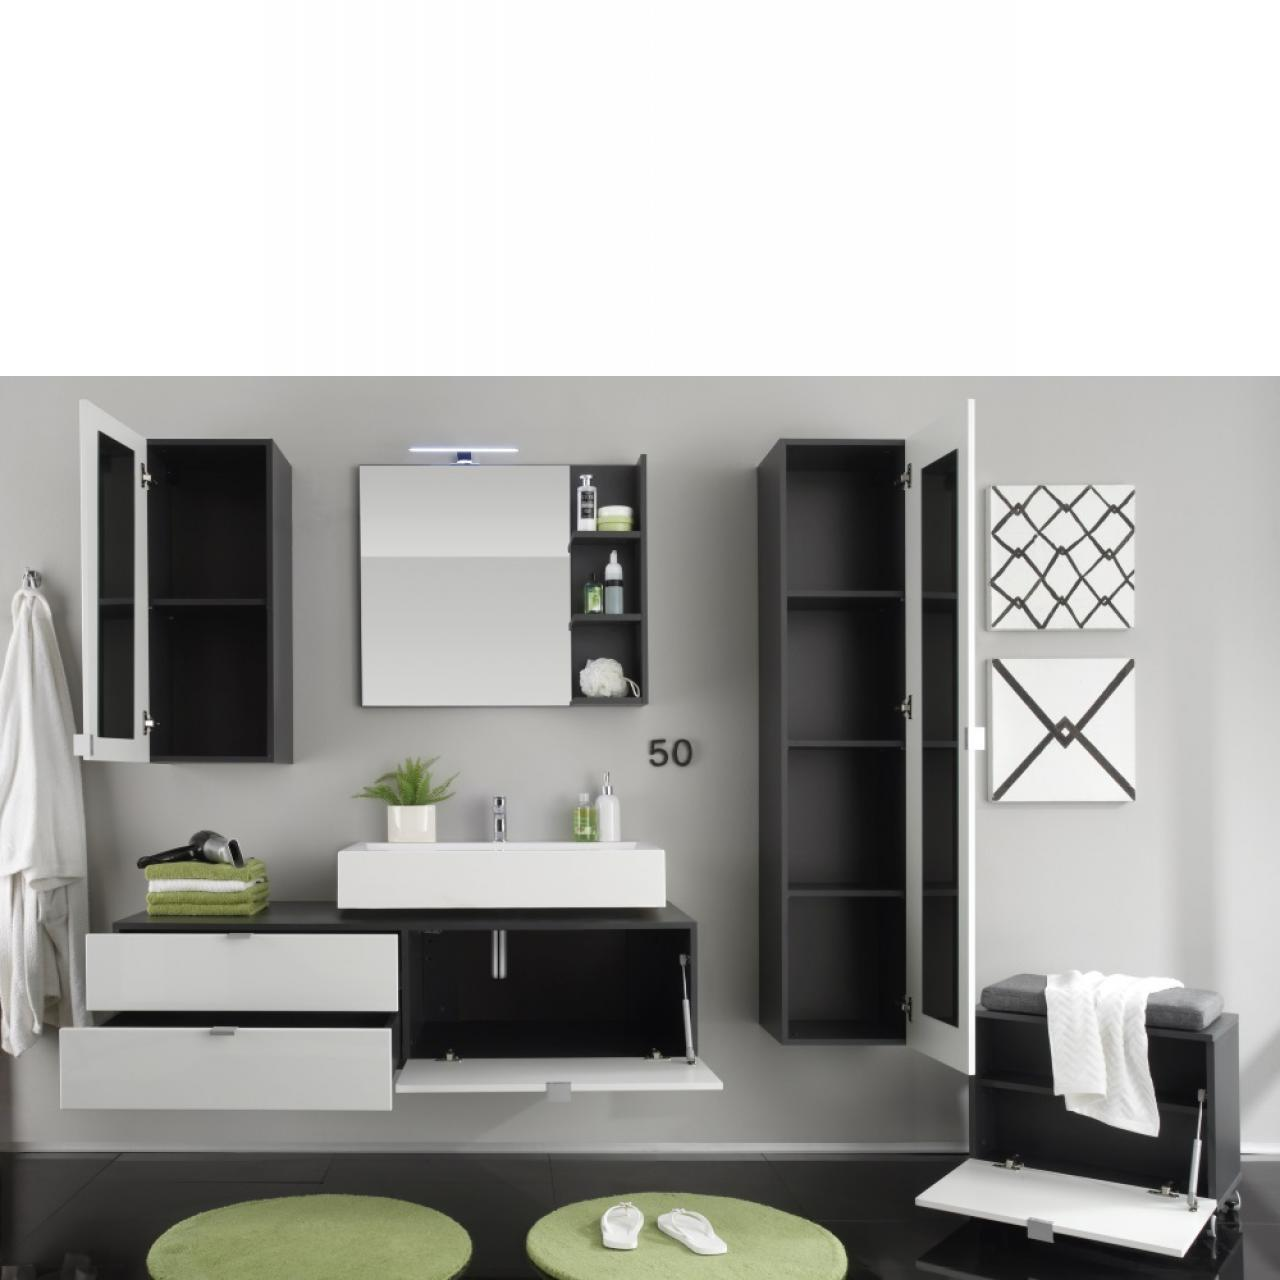 wandspiegel bad beach mit ablage badm bel wohnen. Black Bedroom Furniture Sets. Home Design Ideas